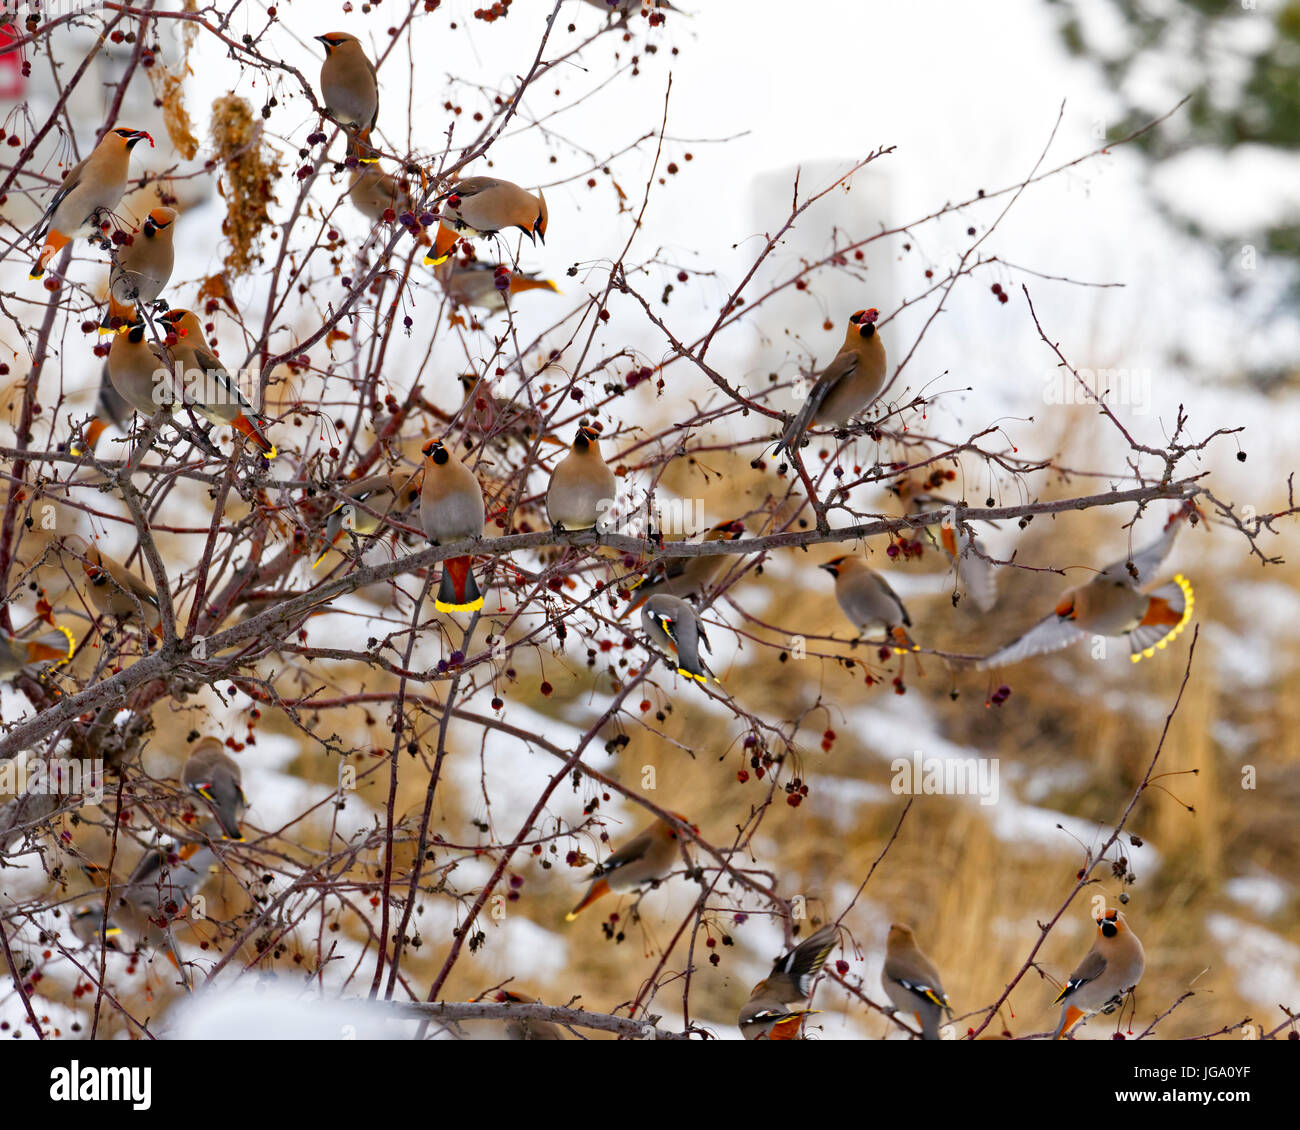 42,741.07552 A frenzied flock of birds -- Bohemian Waxwings -- feeding voraciously on red berries just before the - Stock Image